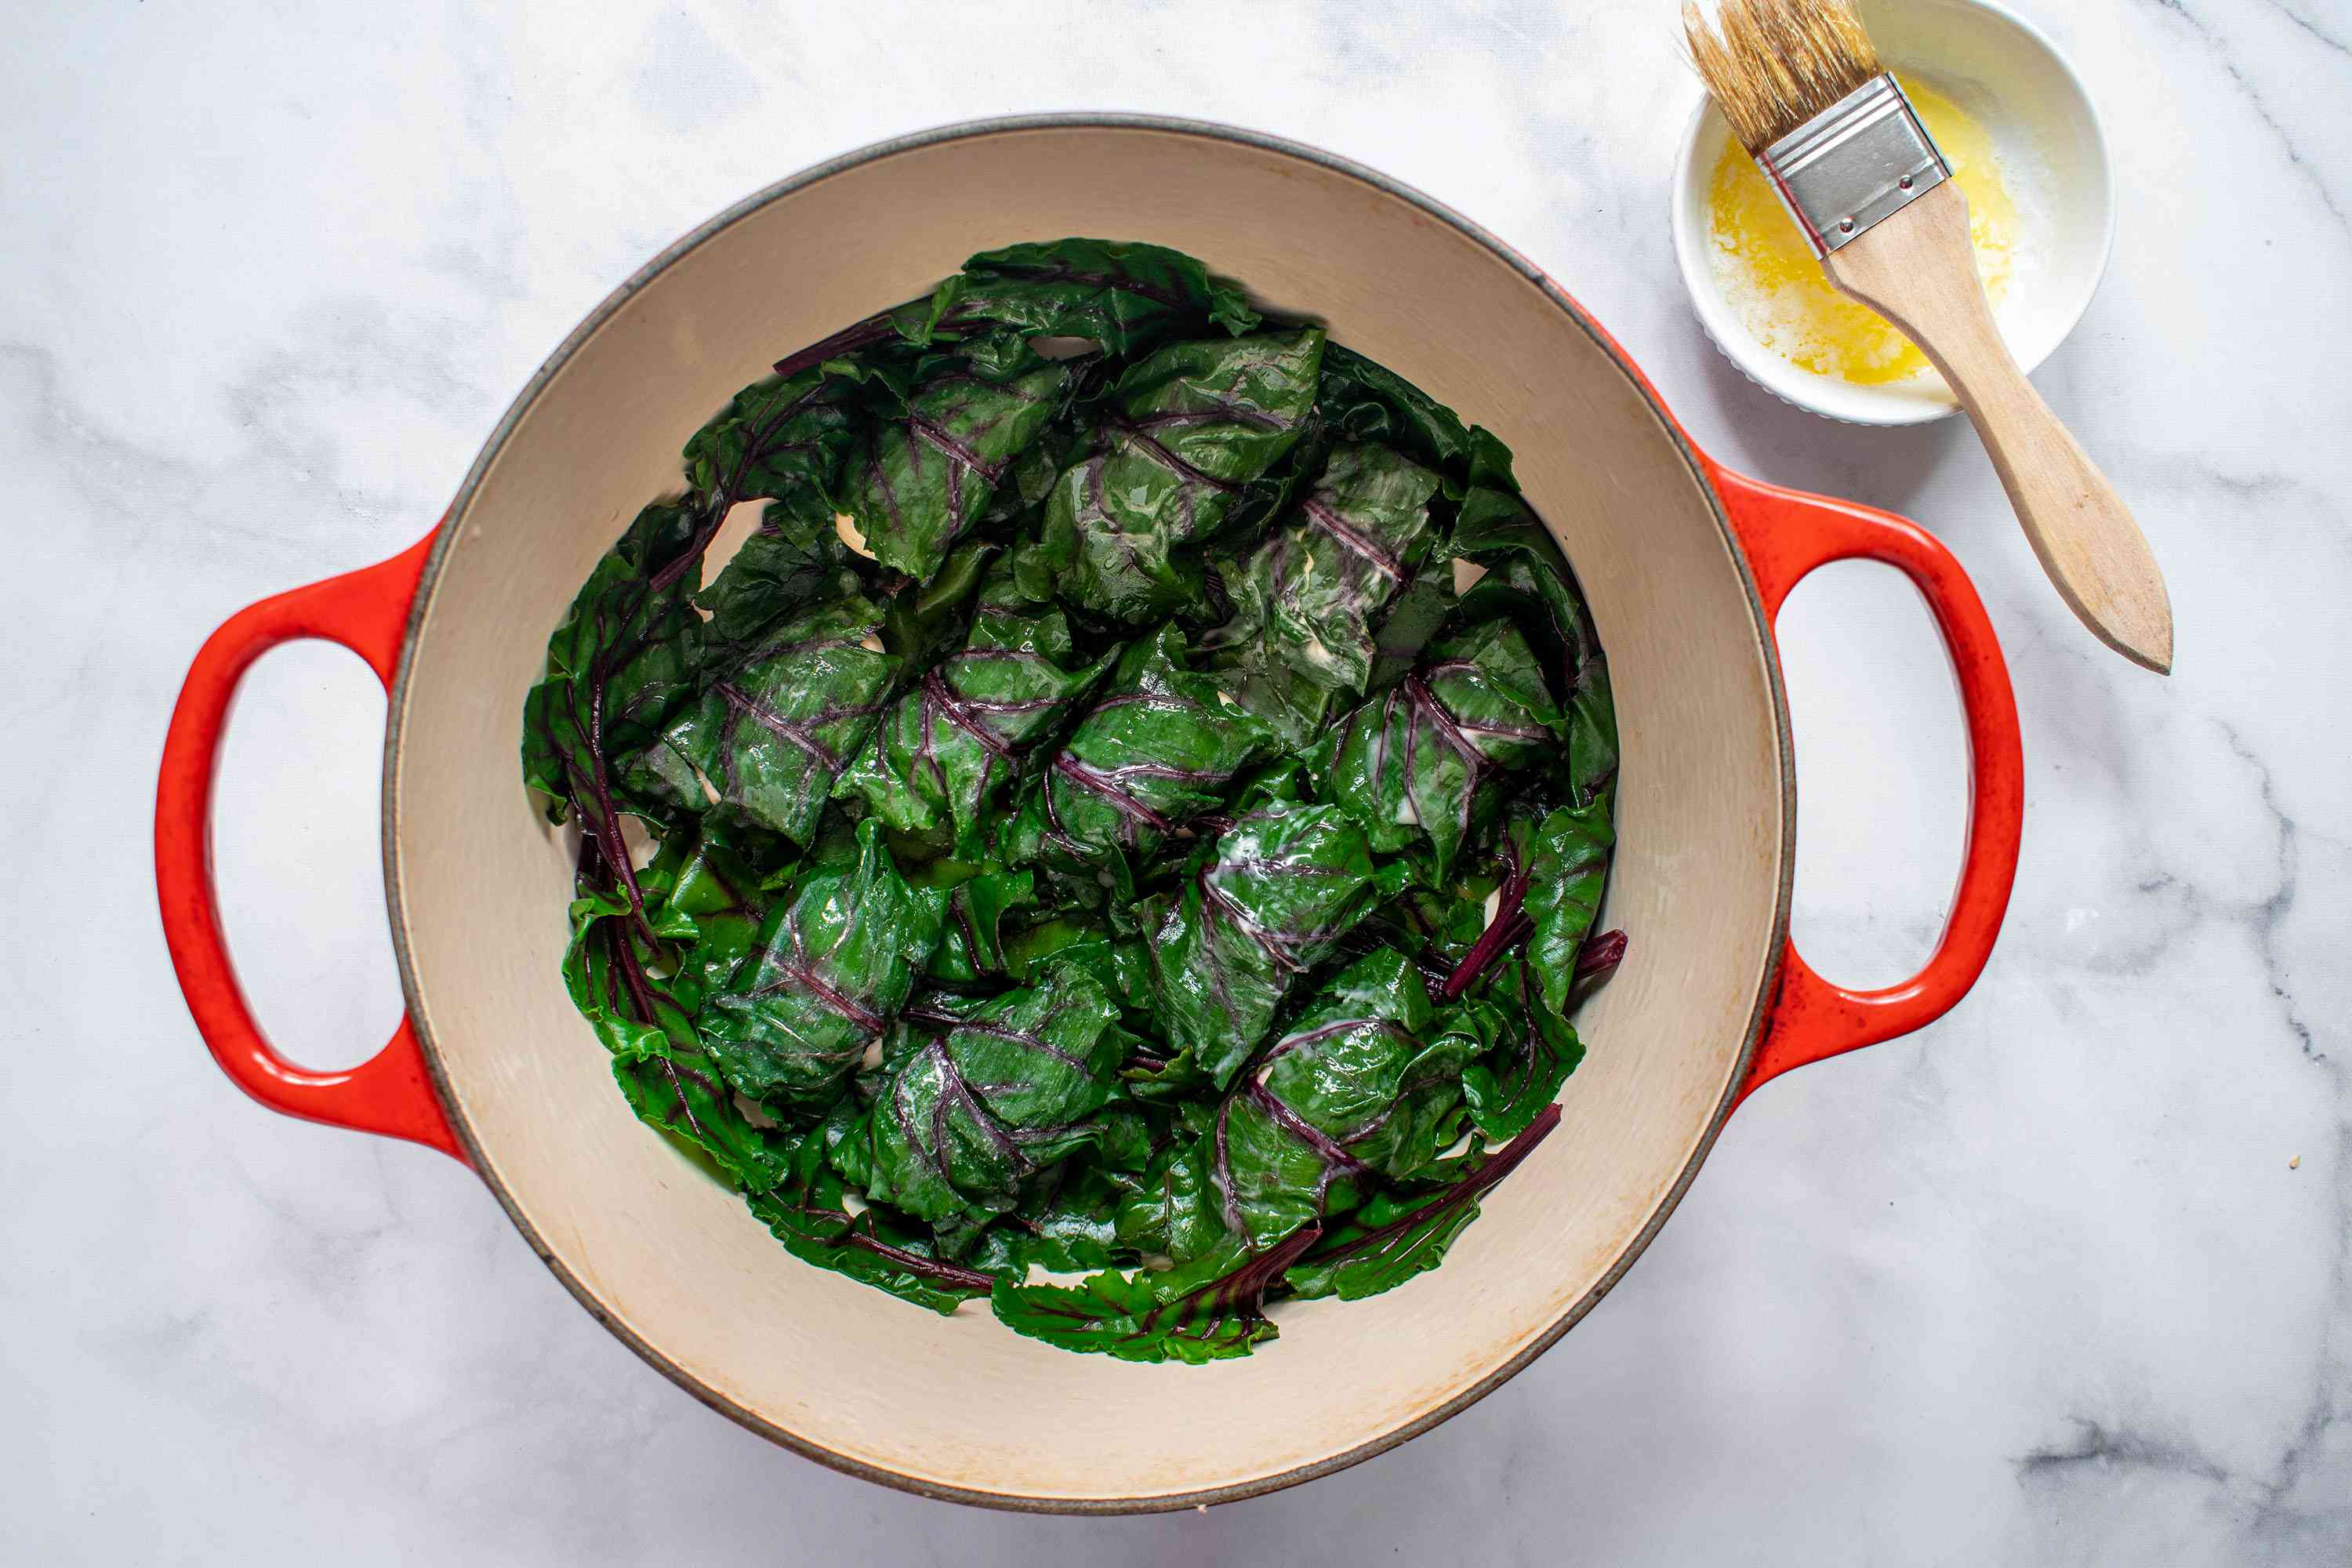 brush the beet leaf rolls with melted butter